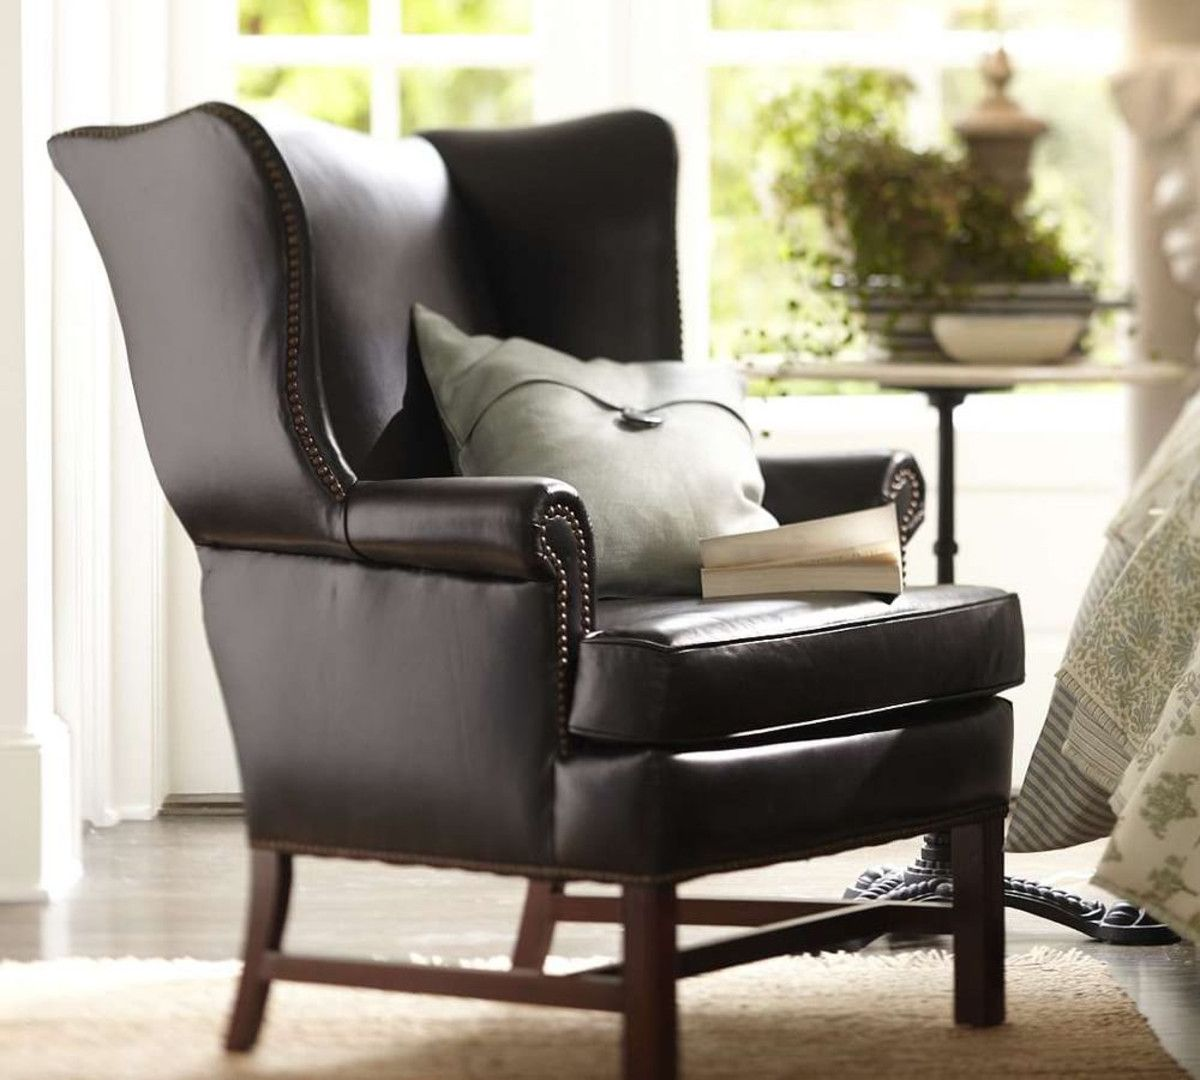 Thatcher Leather Wingback Chair Black Leather wingback